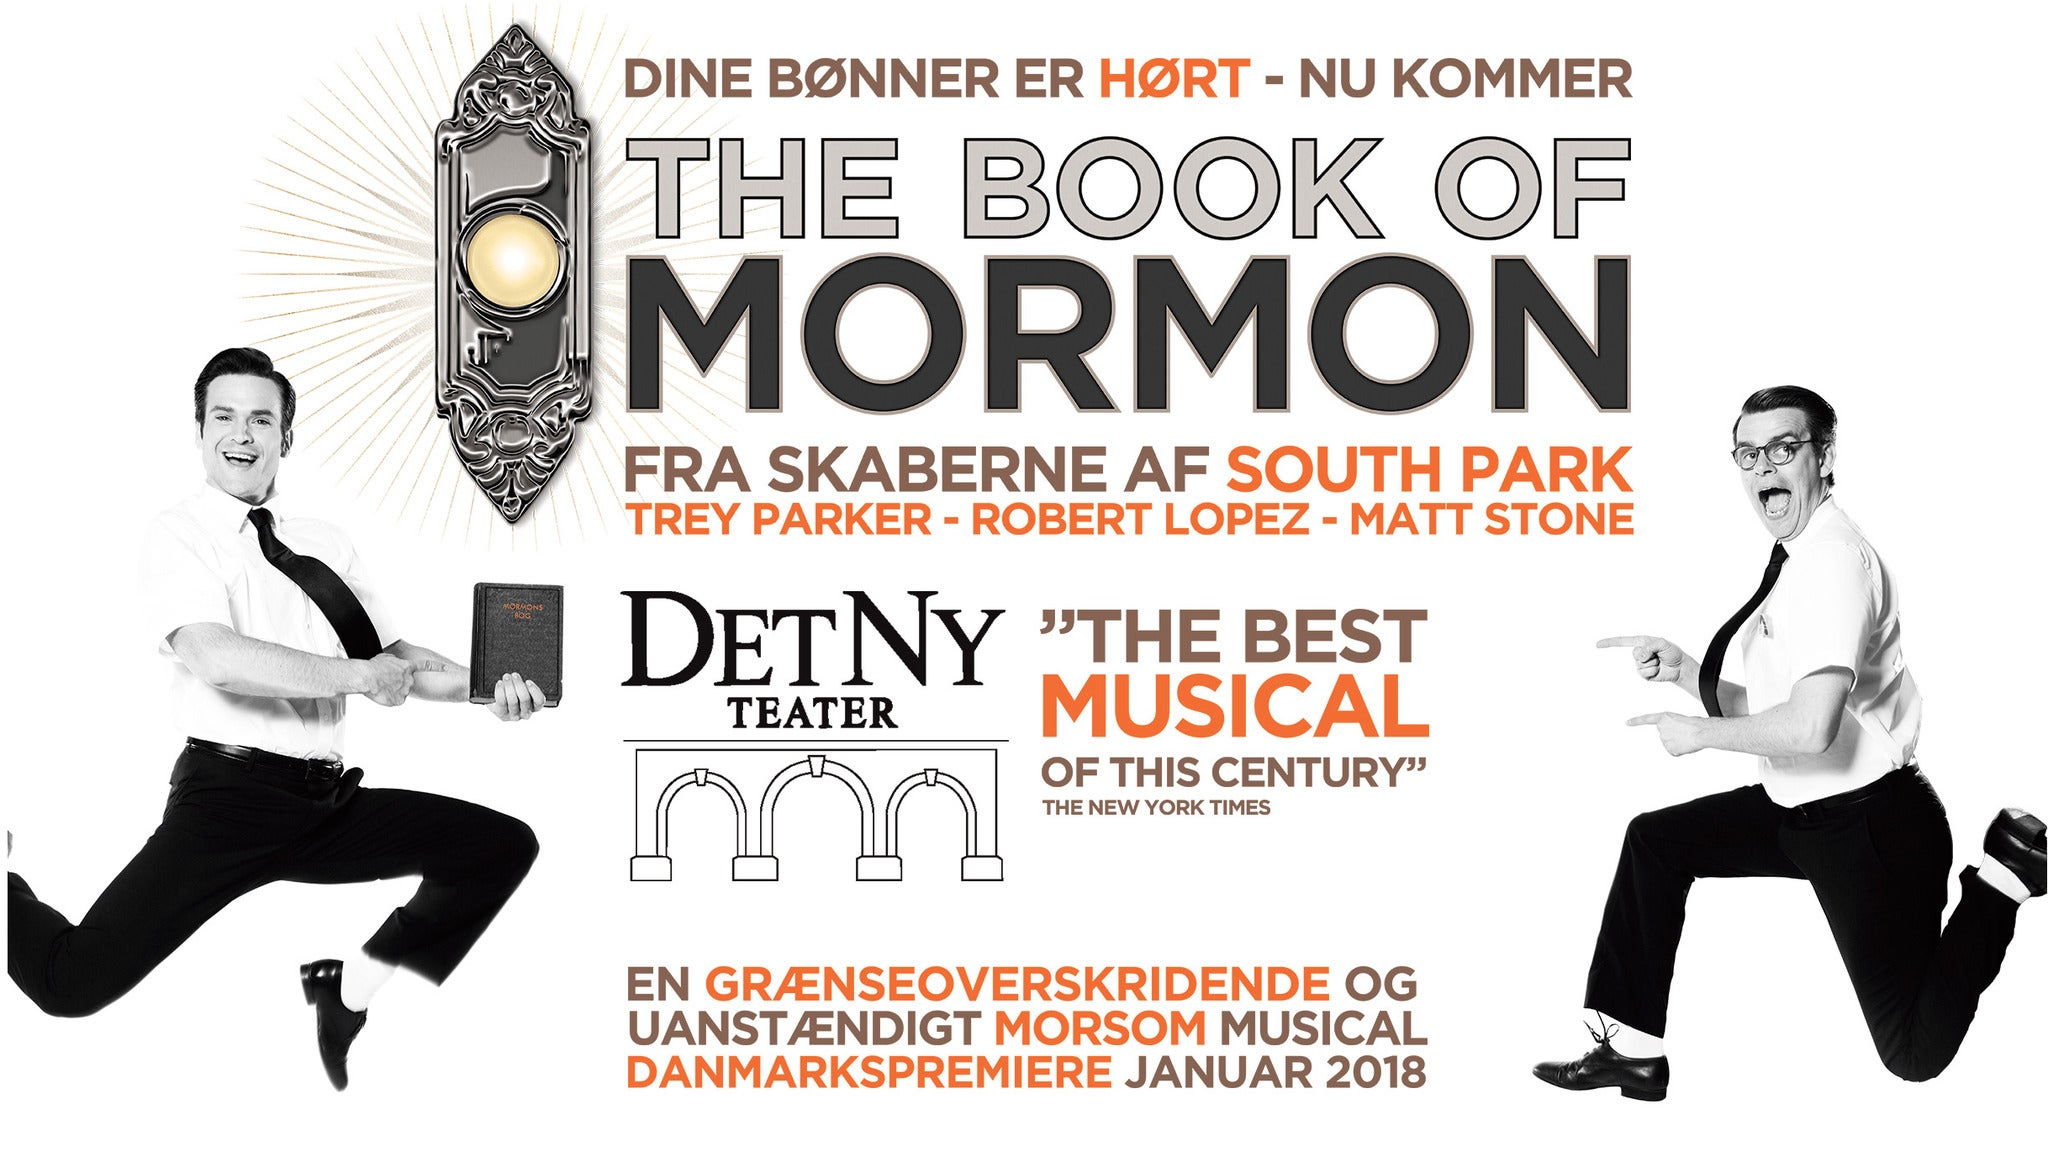 The Book of Mormon - Costa Mesa, CA 92626